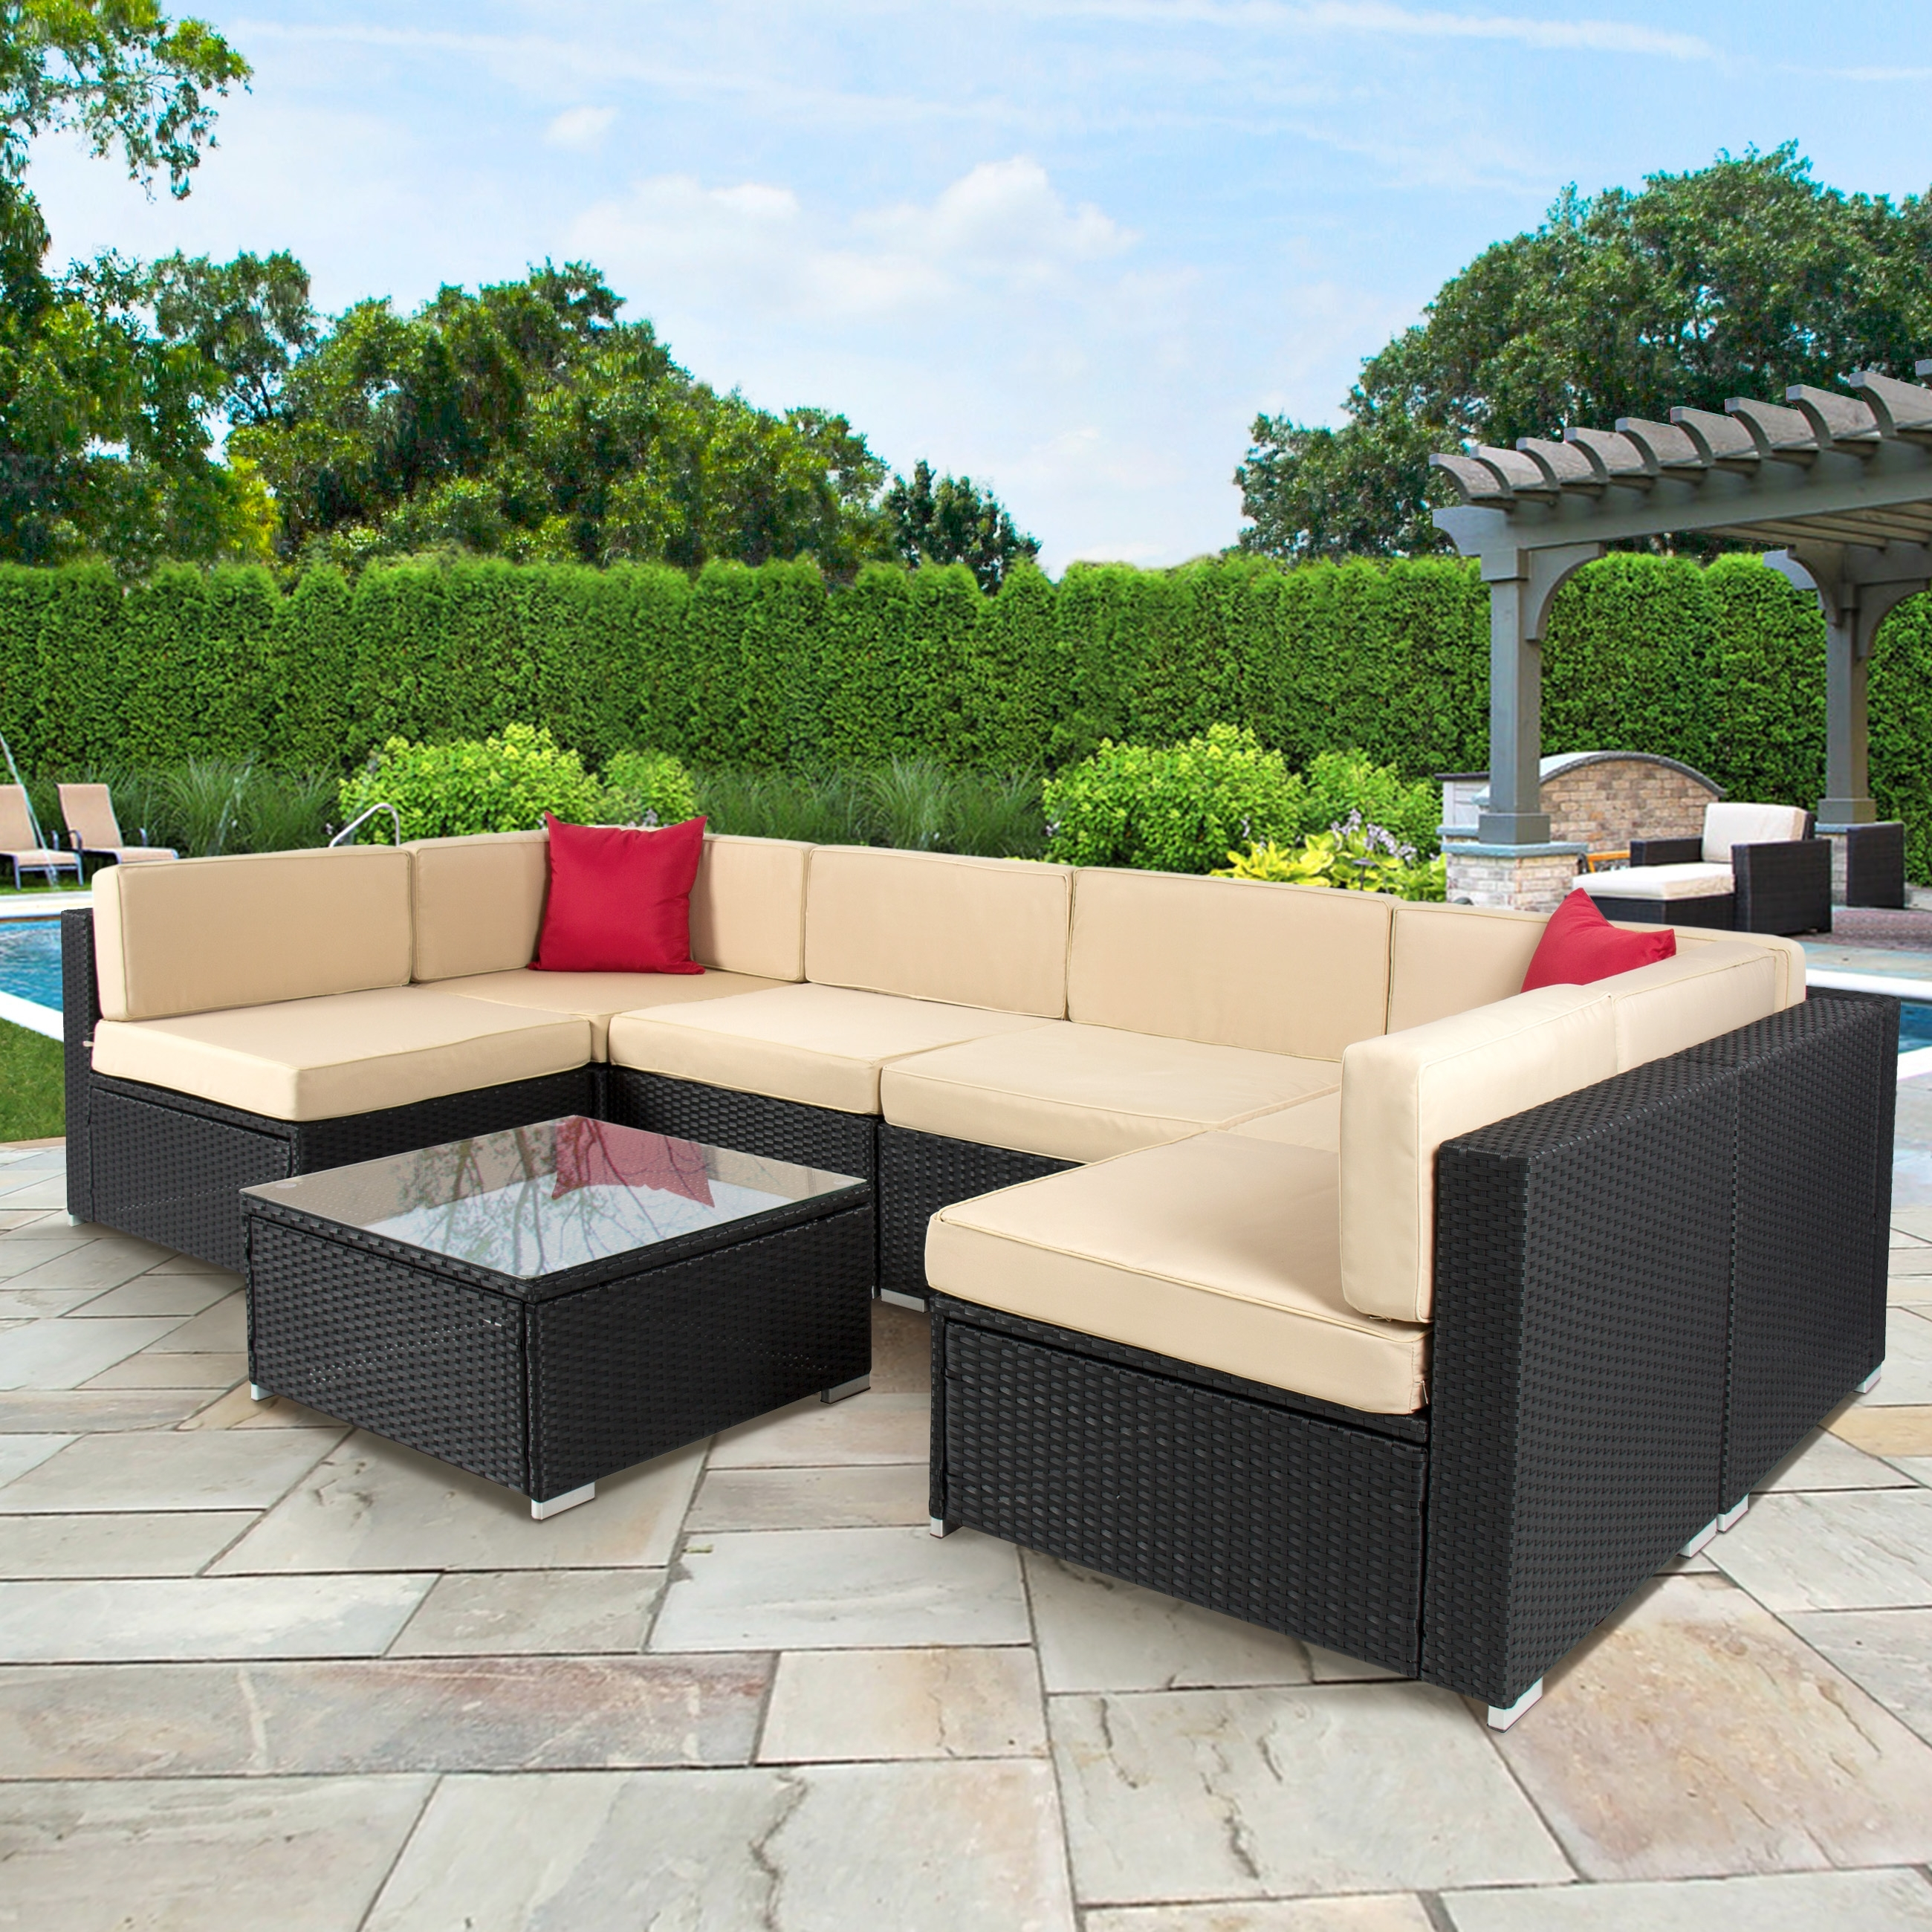 Jewel Patio Umbrellas Within Current How To Choose The Right Types Of Outdoor Patio Furniture? – Blogbeen (Gallery 9 of 20)